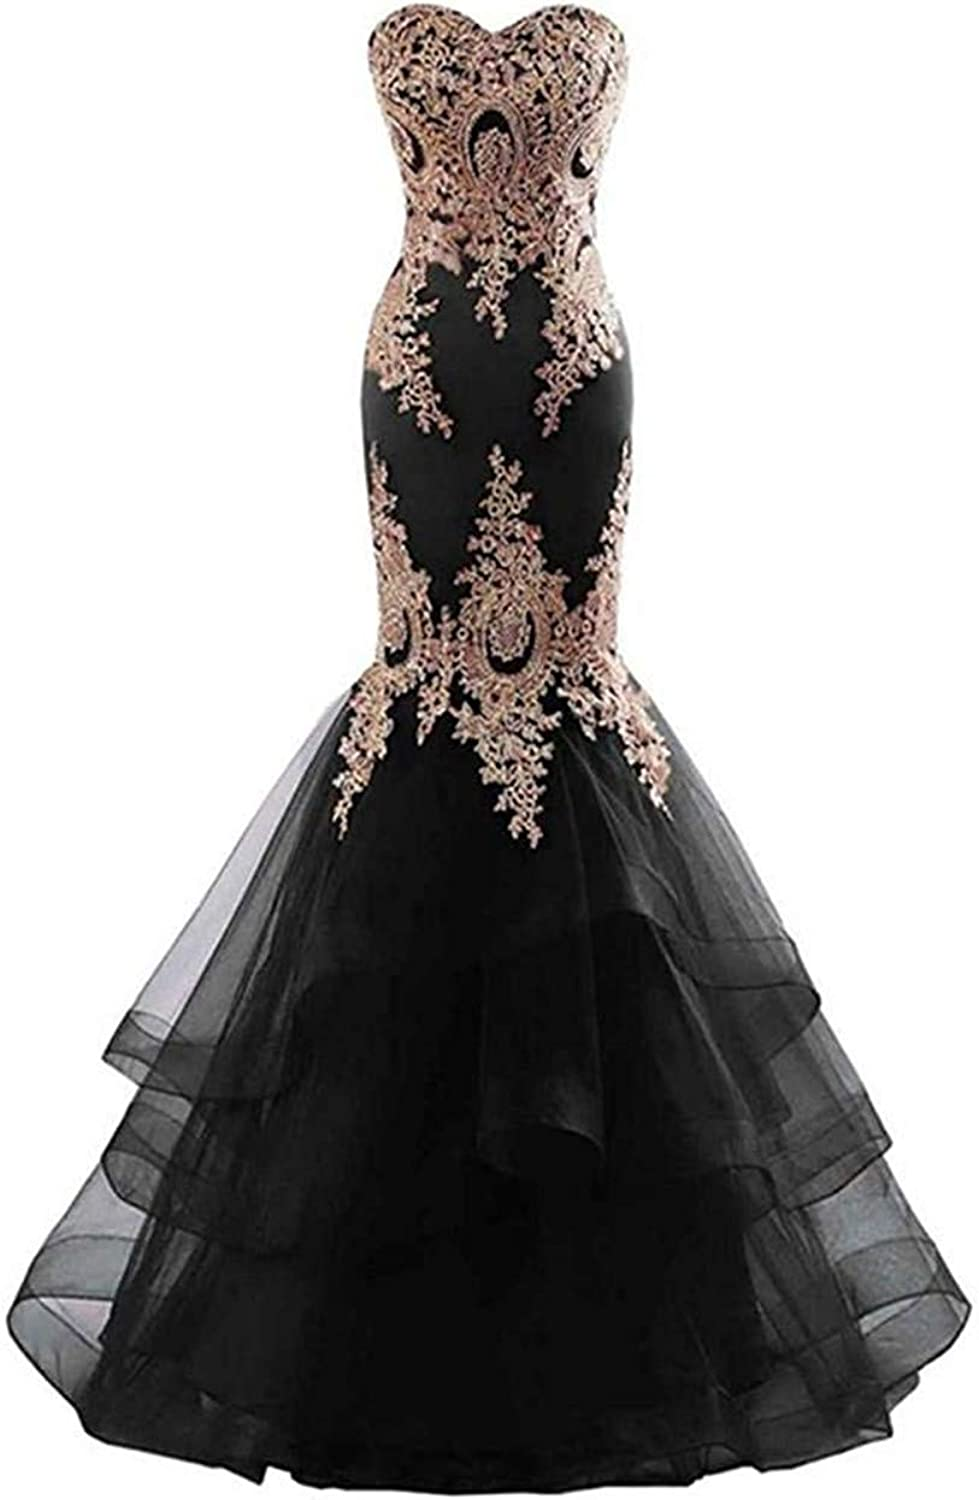 Sophie Women's Sweetheart gold Lace Applique Mermaid Prom Dress Long Sleeveless Tulle Evening Gown S166